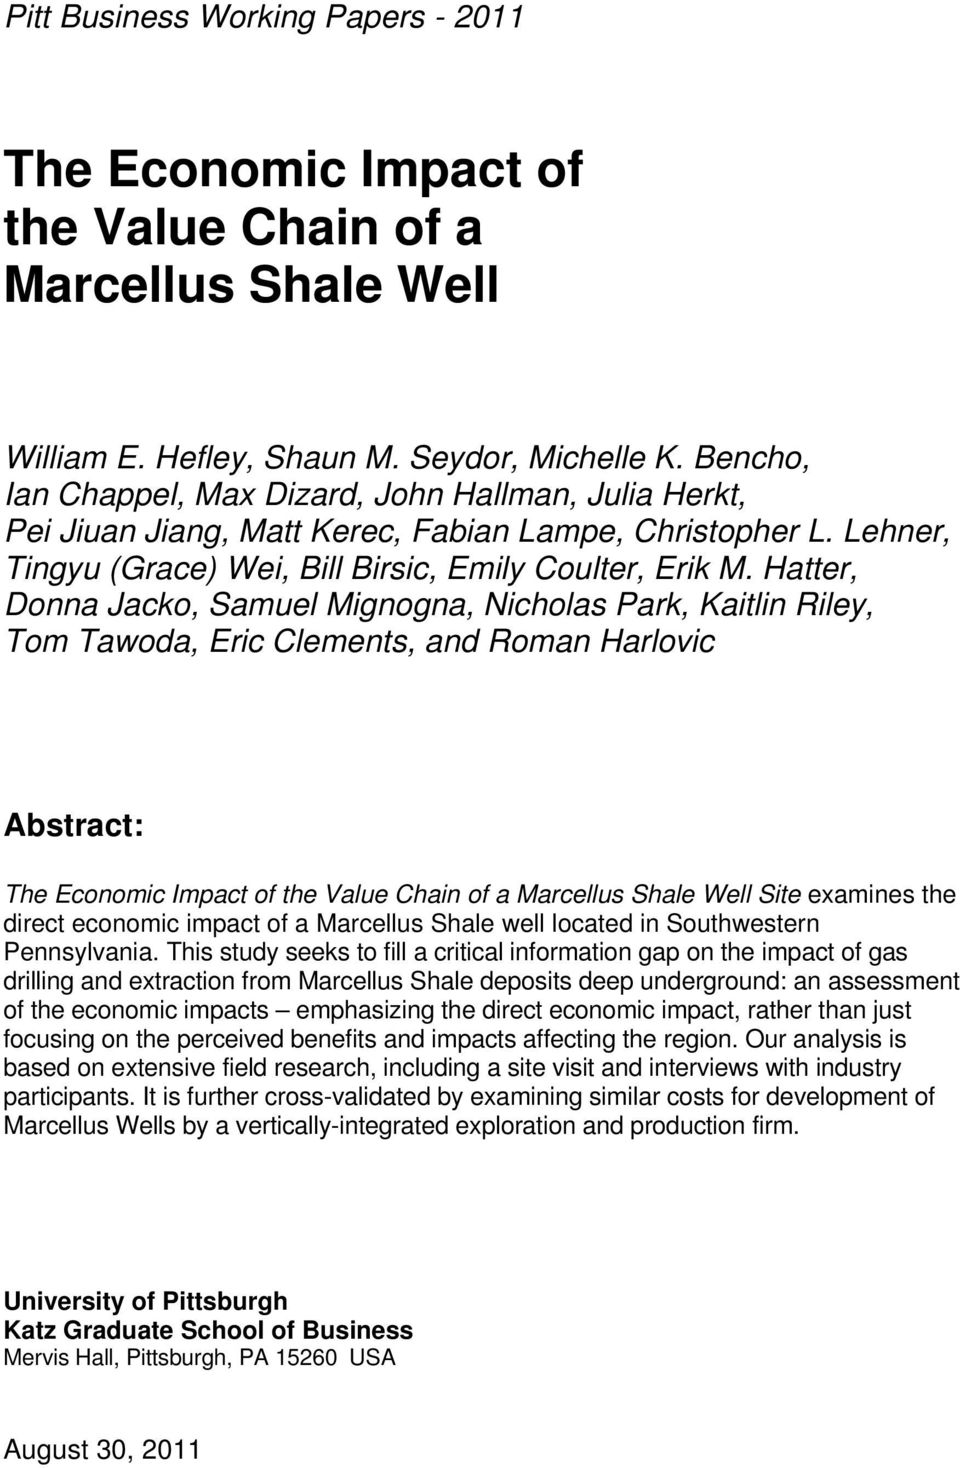 Hatter, Donna Jacko, Samuel Mignogna, Nicholas Park, Kaitlin Riley, Tom Tawoda, Eric Clements, and Roman Harlovic Abstract: The Economic Impact of the Value Chain of a Marcellus Shale Well Site